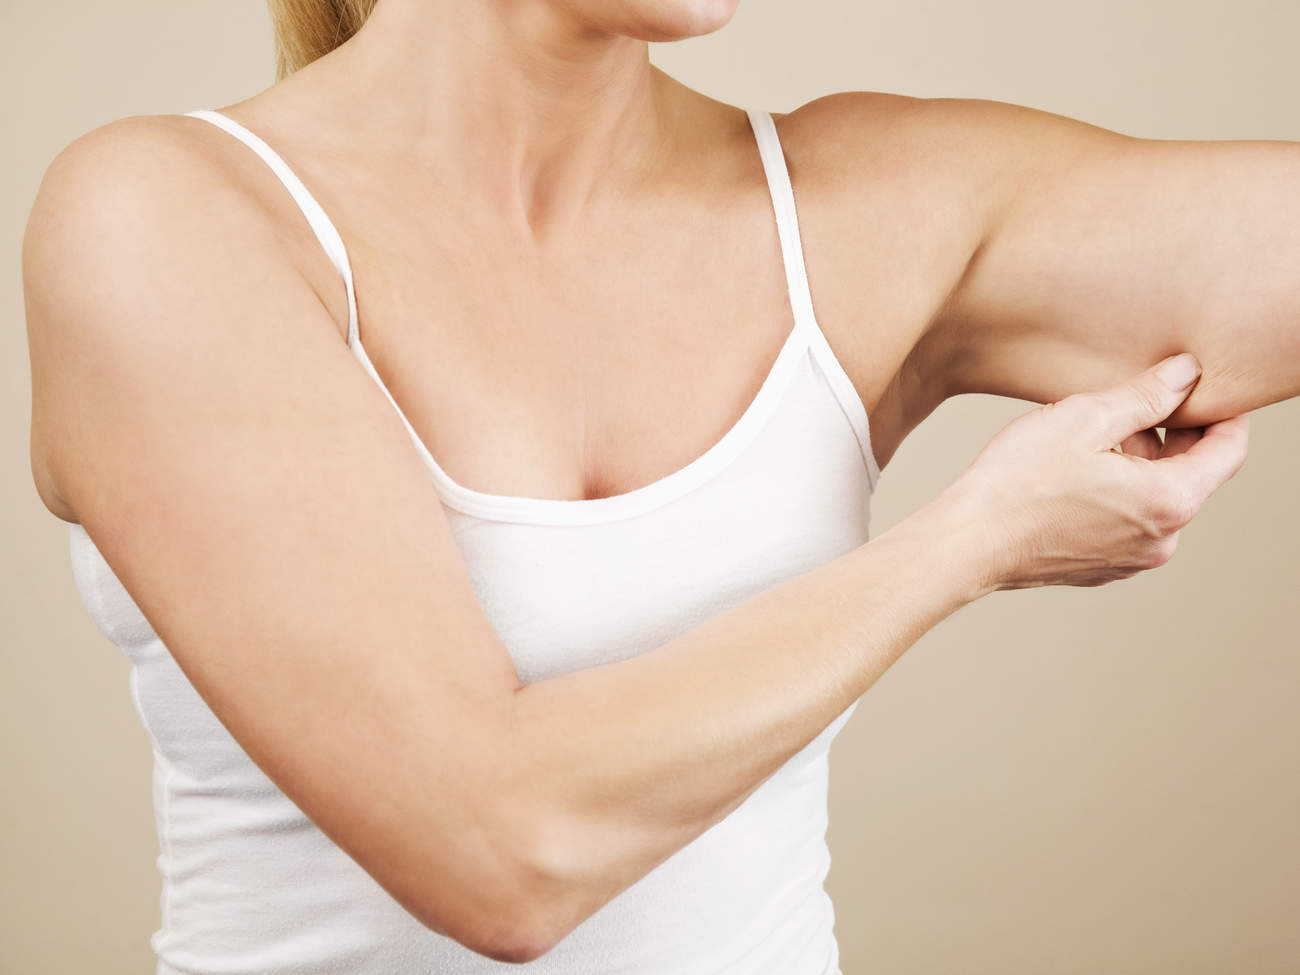 sagging-skin-arm-weight-loss-plastic-surgery